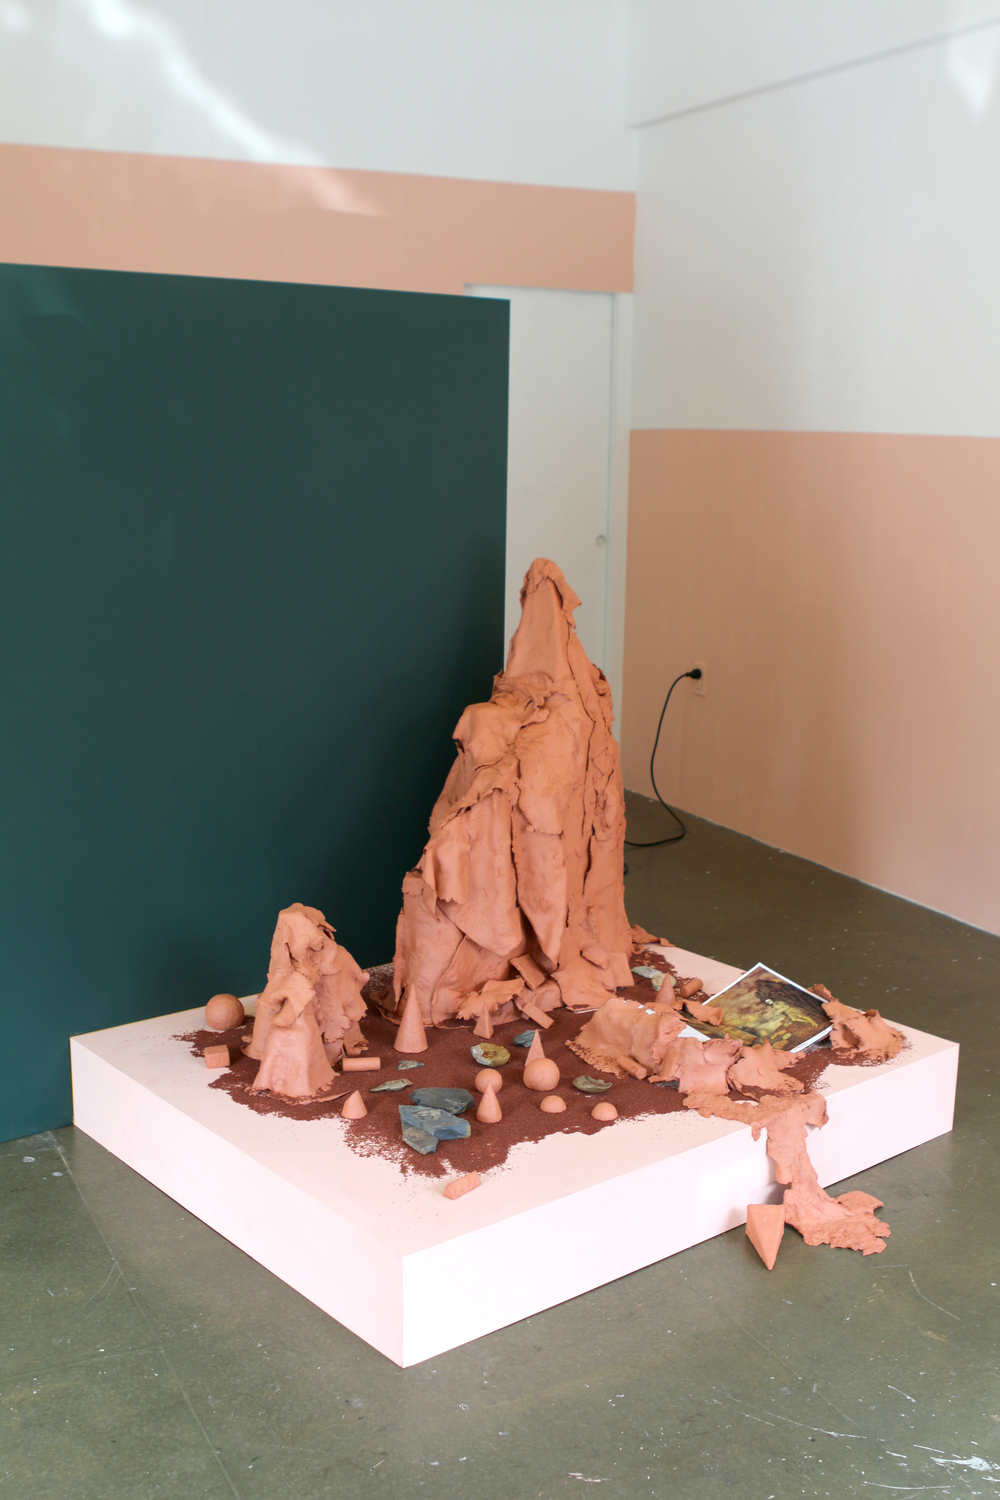 terra-cotta clay, book, fossils  70 x 70 x 70 inches